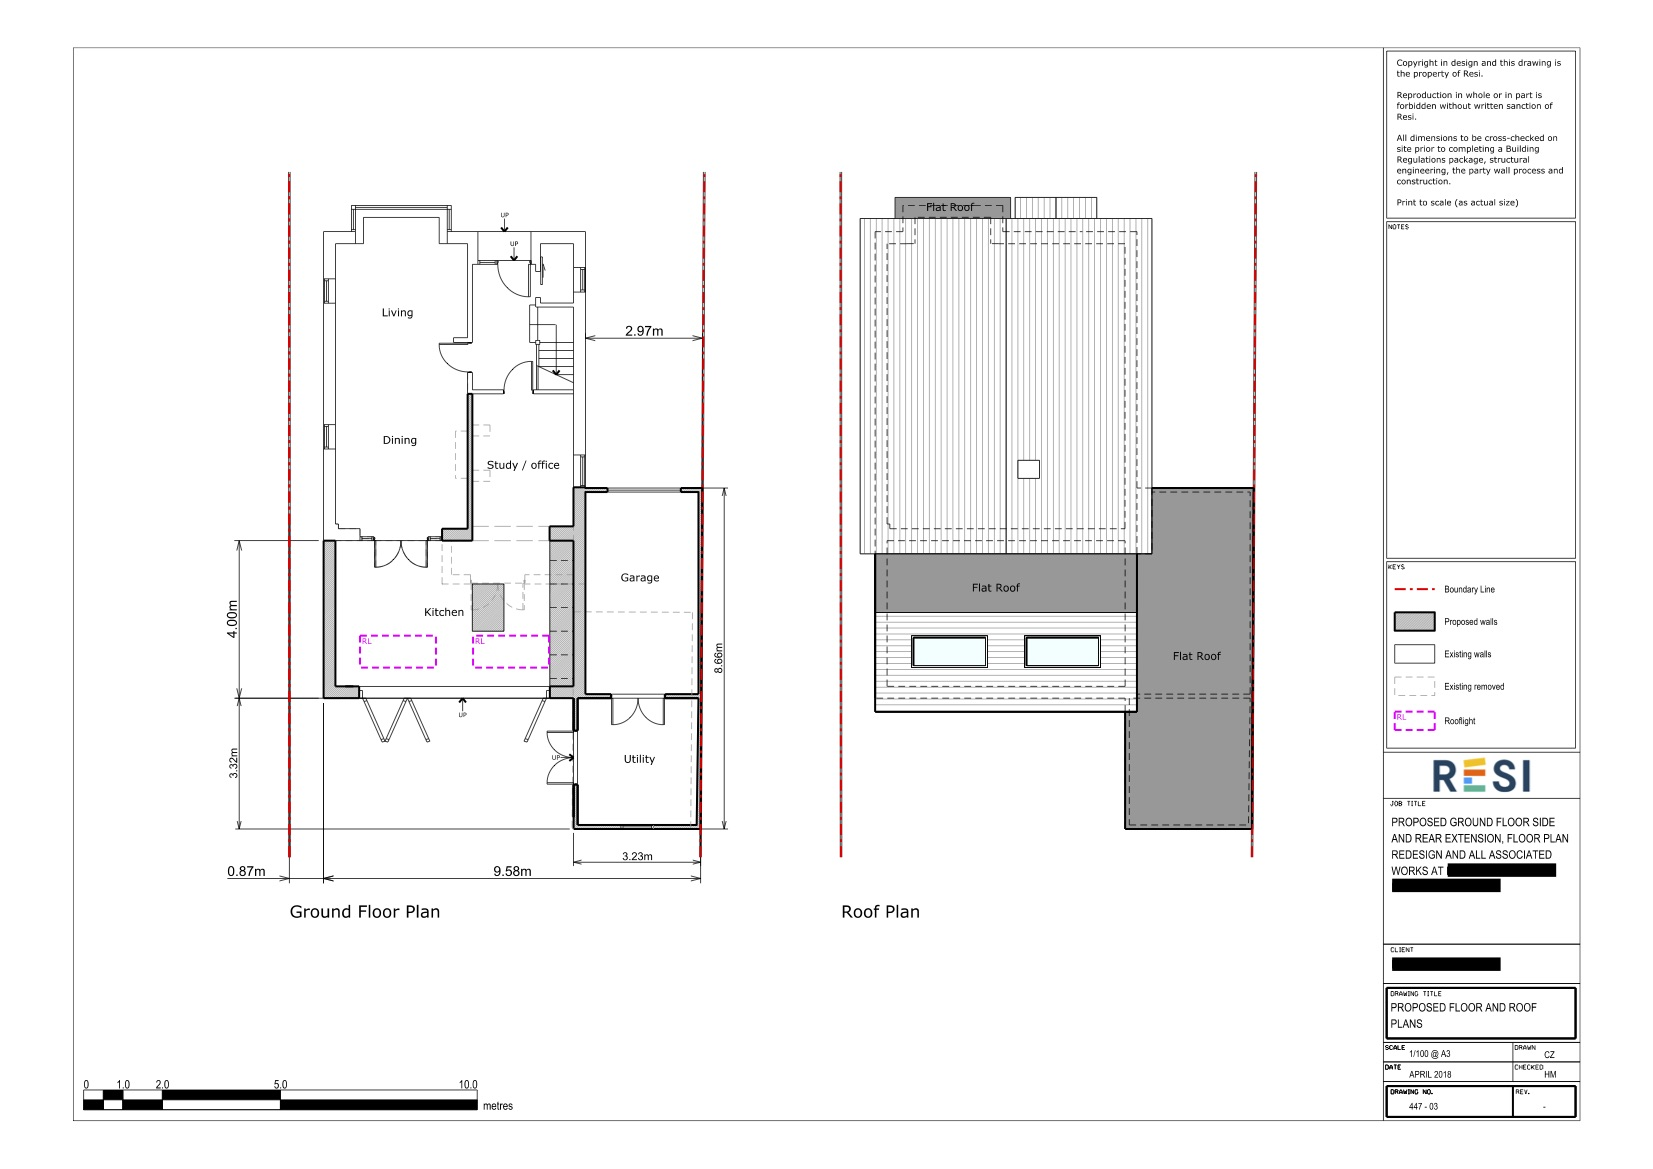 Architectural drawings rev a 4   ground and roof plans